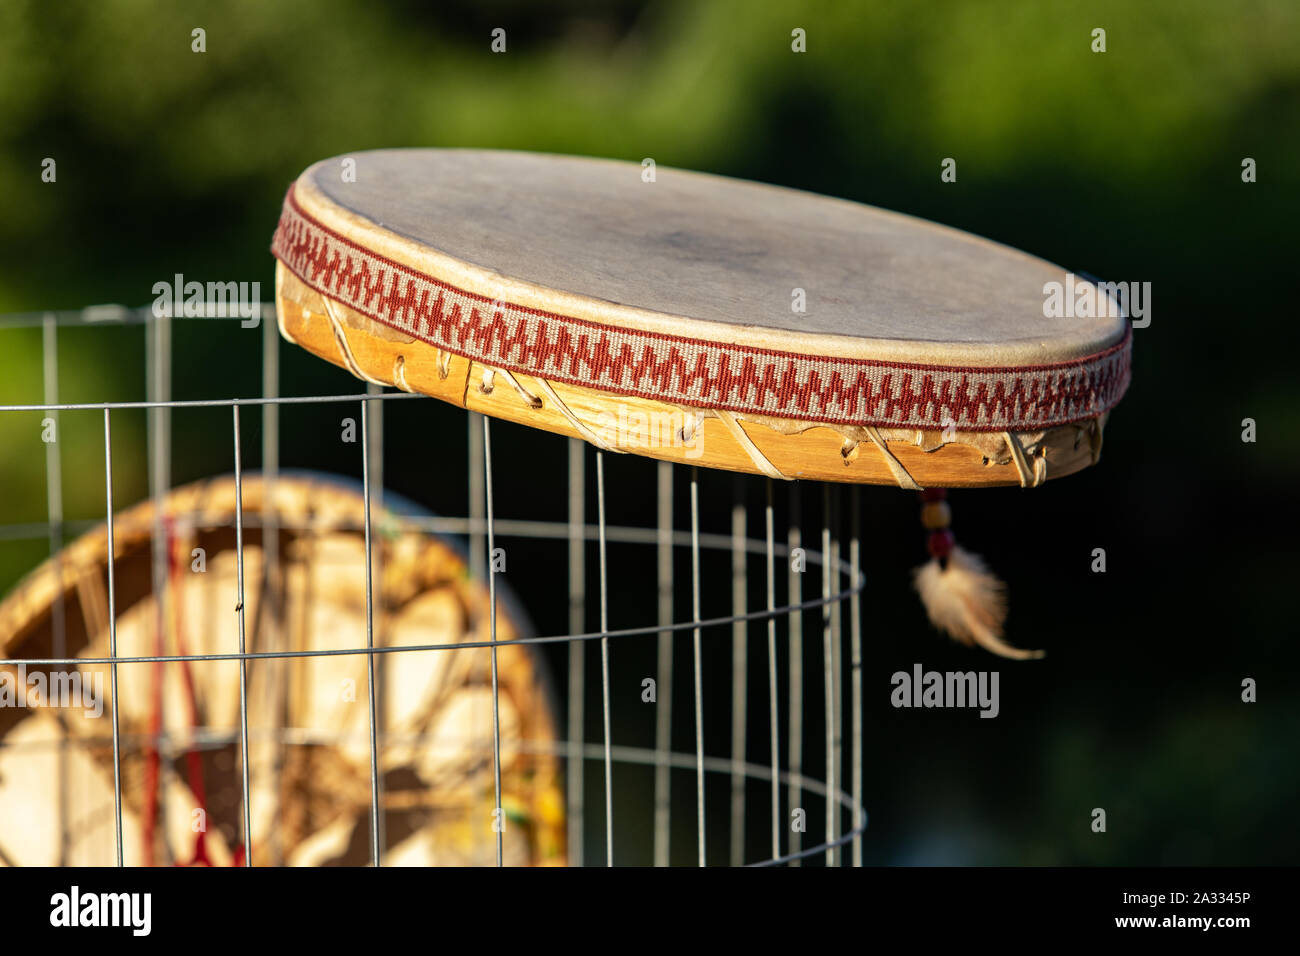 BGLKCS Native American Drums Flute and Shaker Image